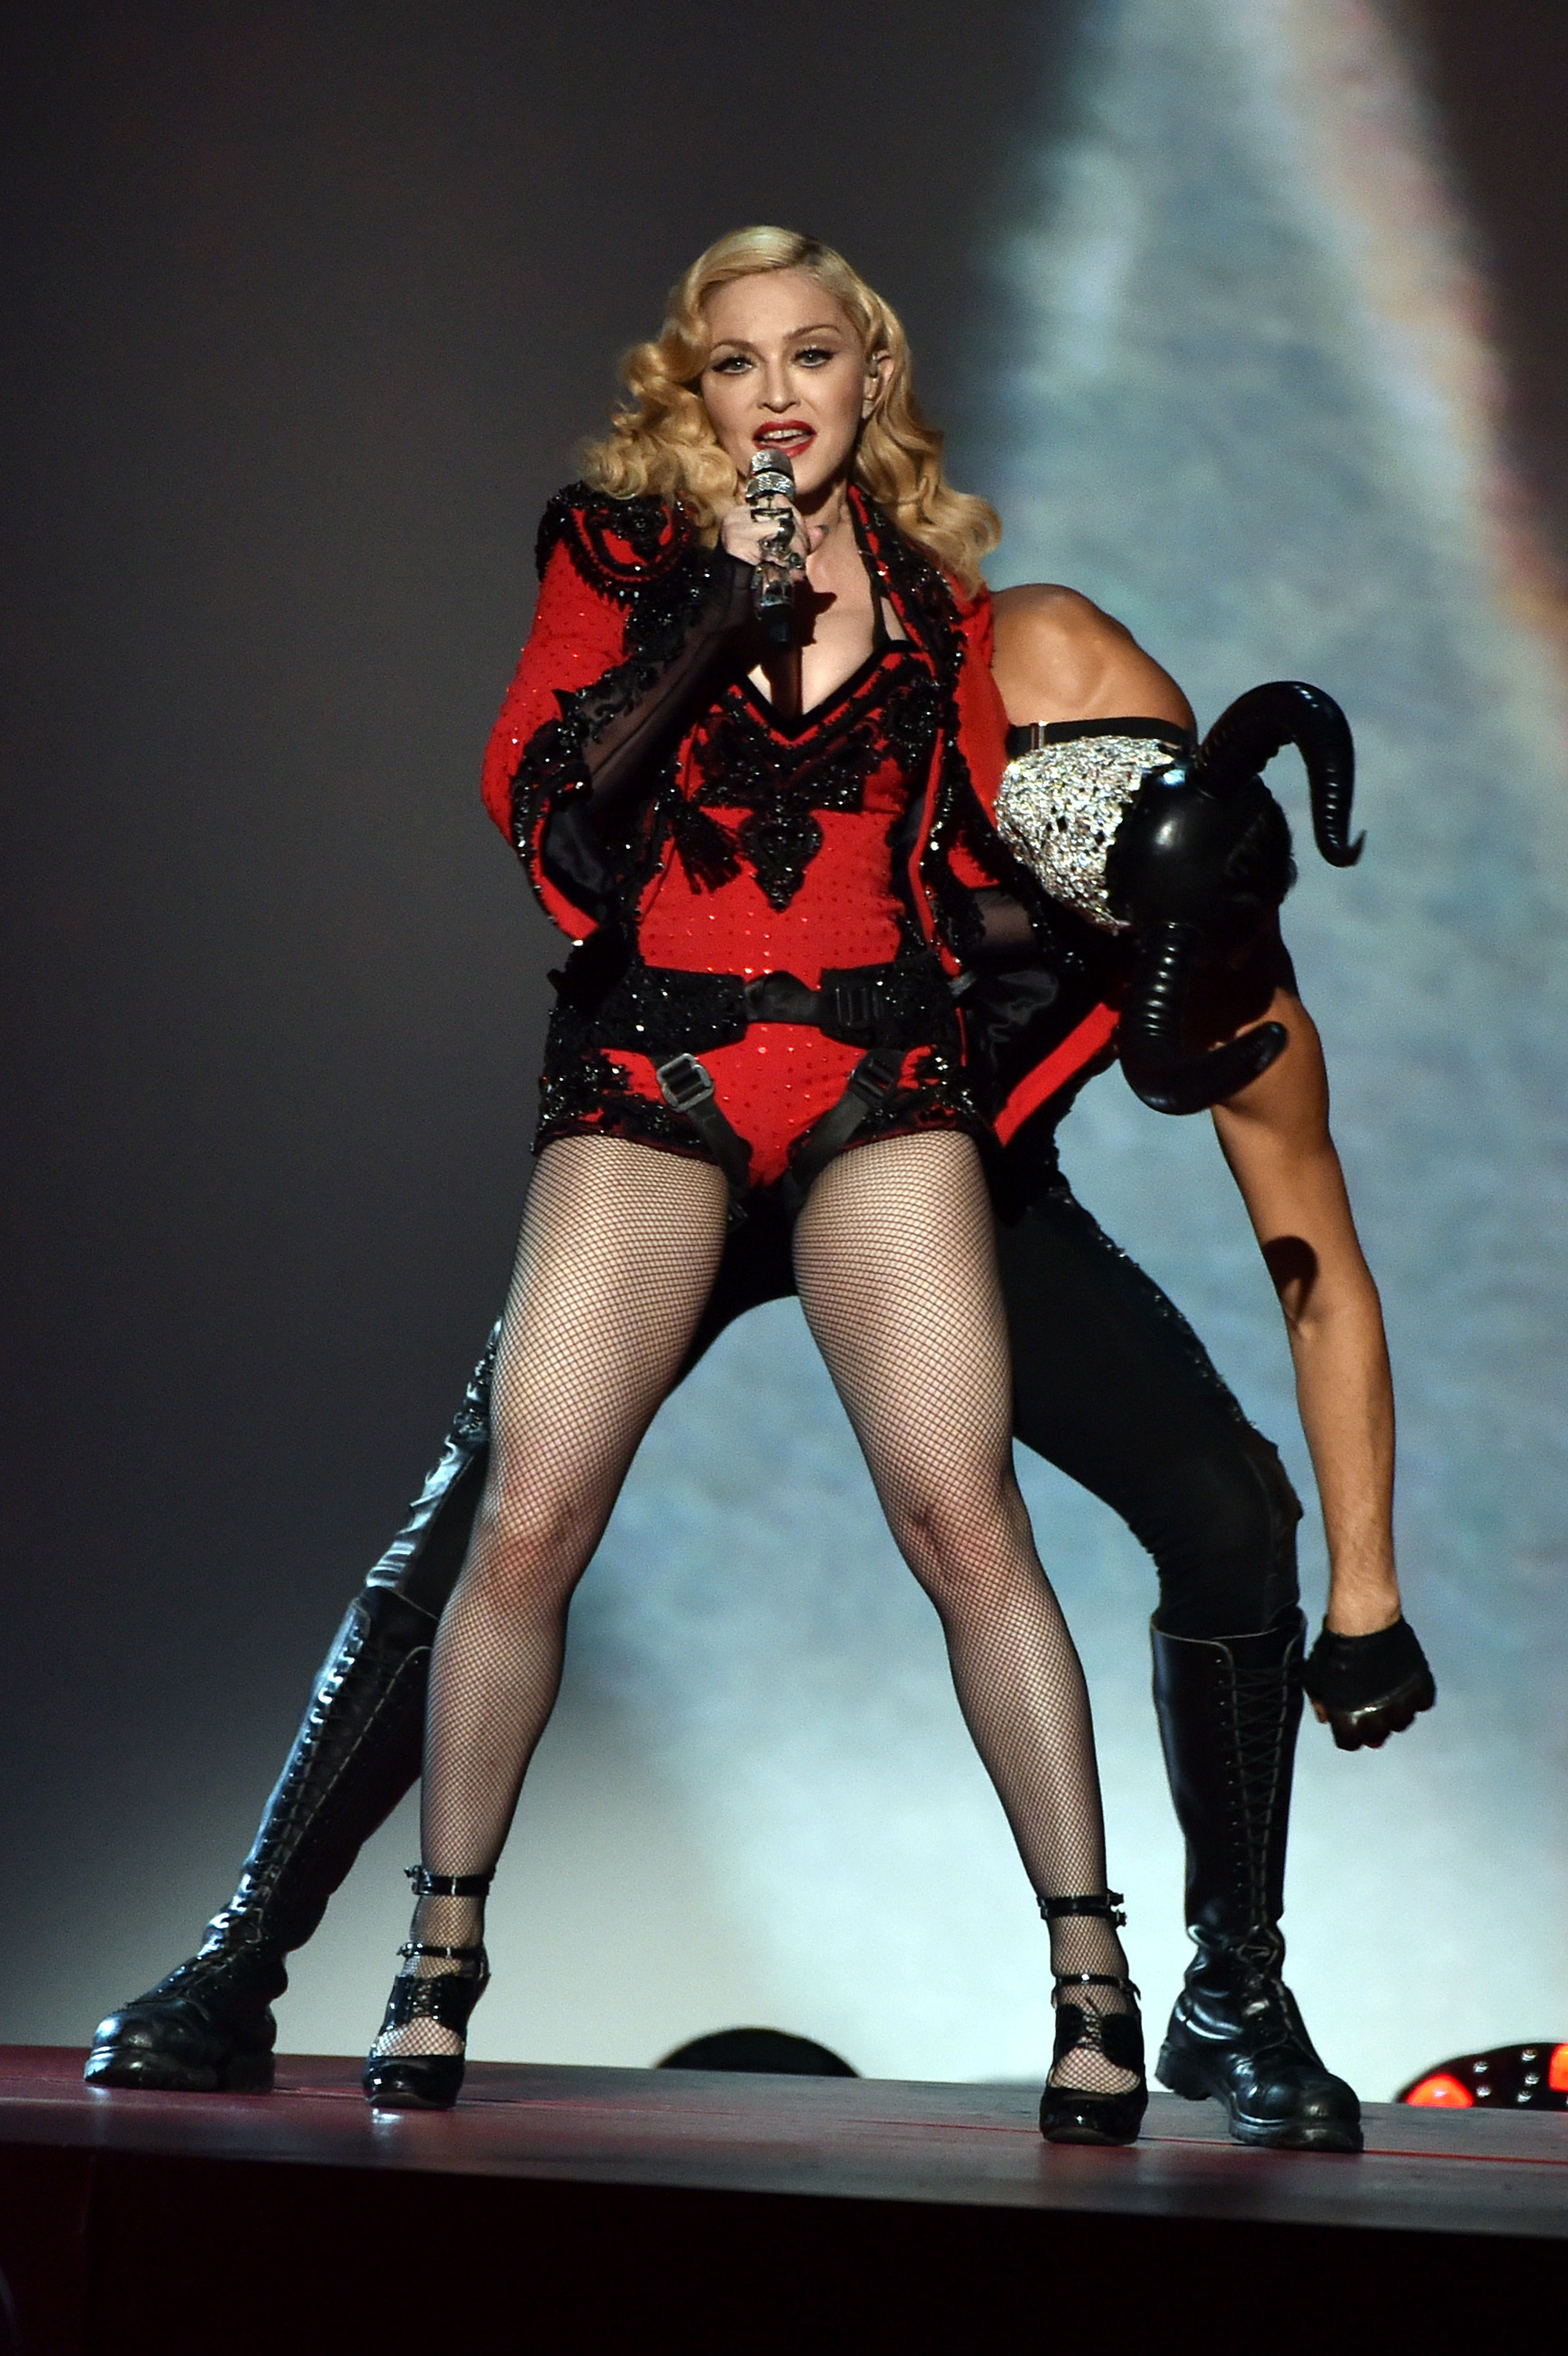 Madonna to Kanye West: 'Don't Go to Awards Shows Looking for Justice'